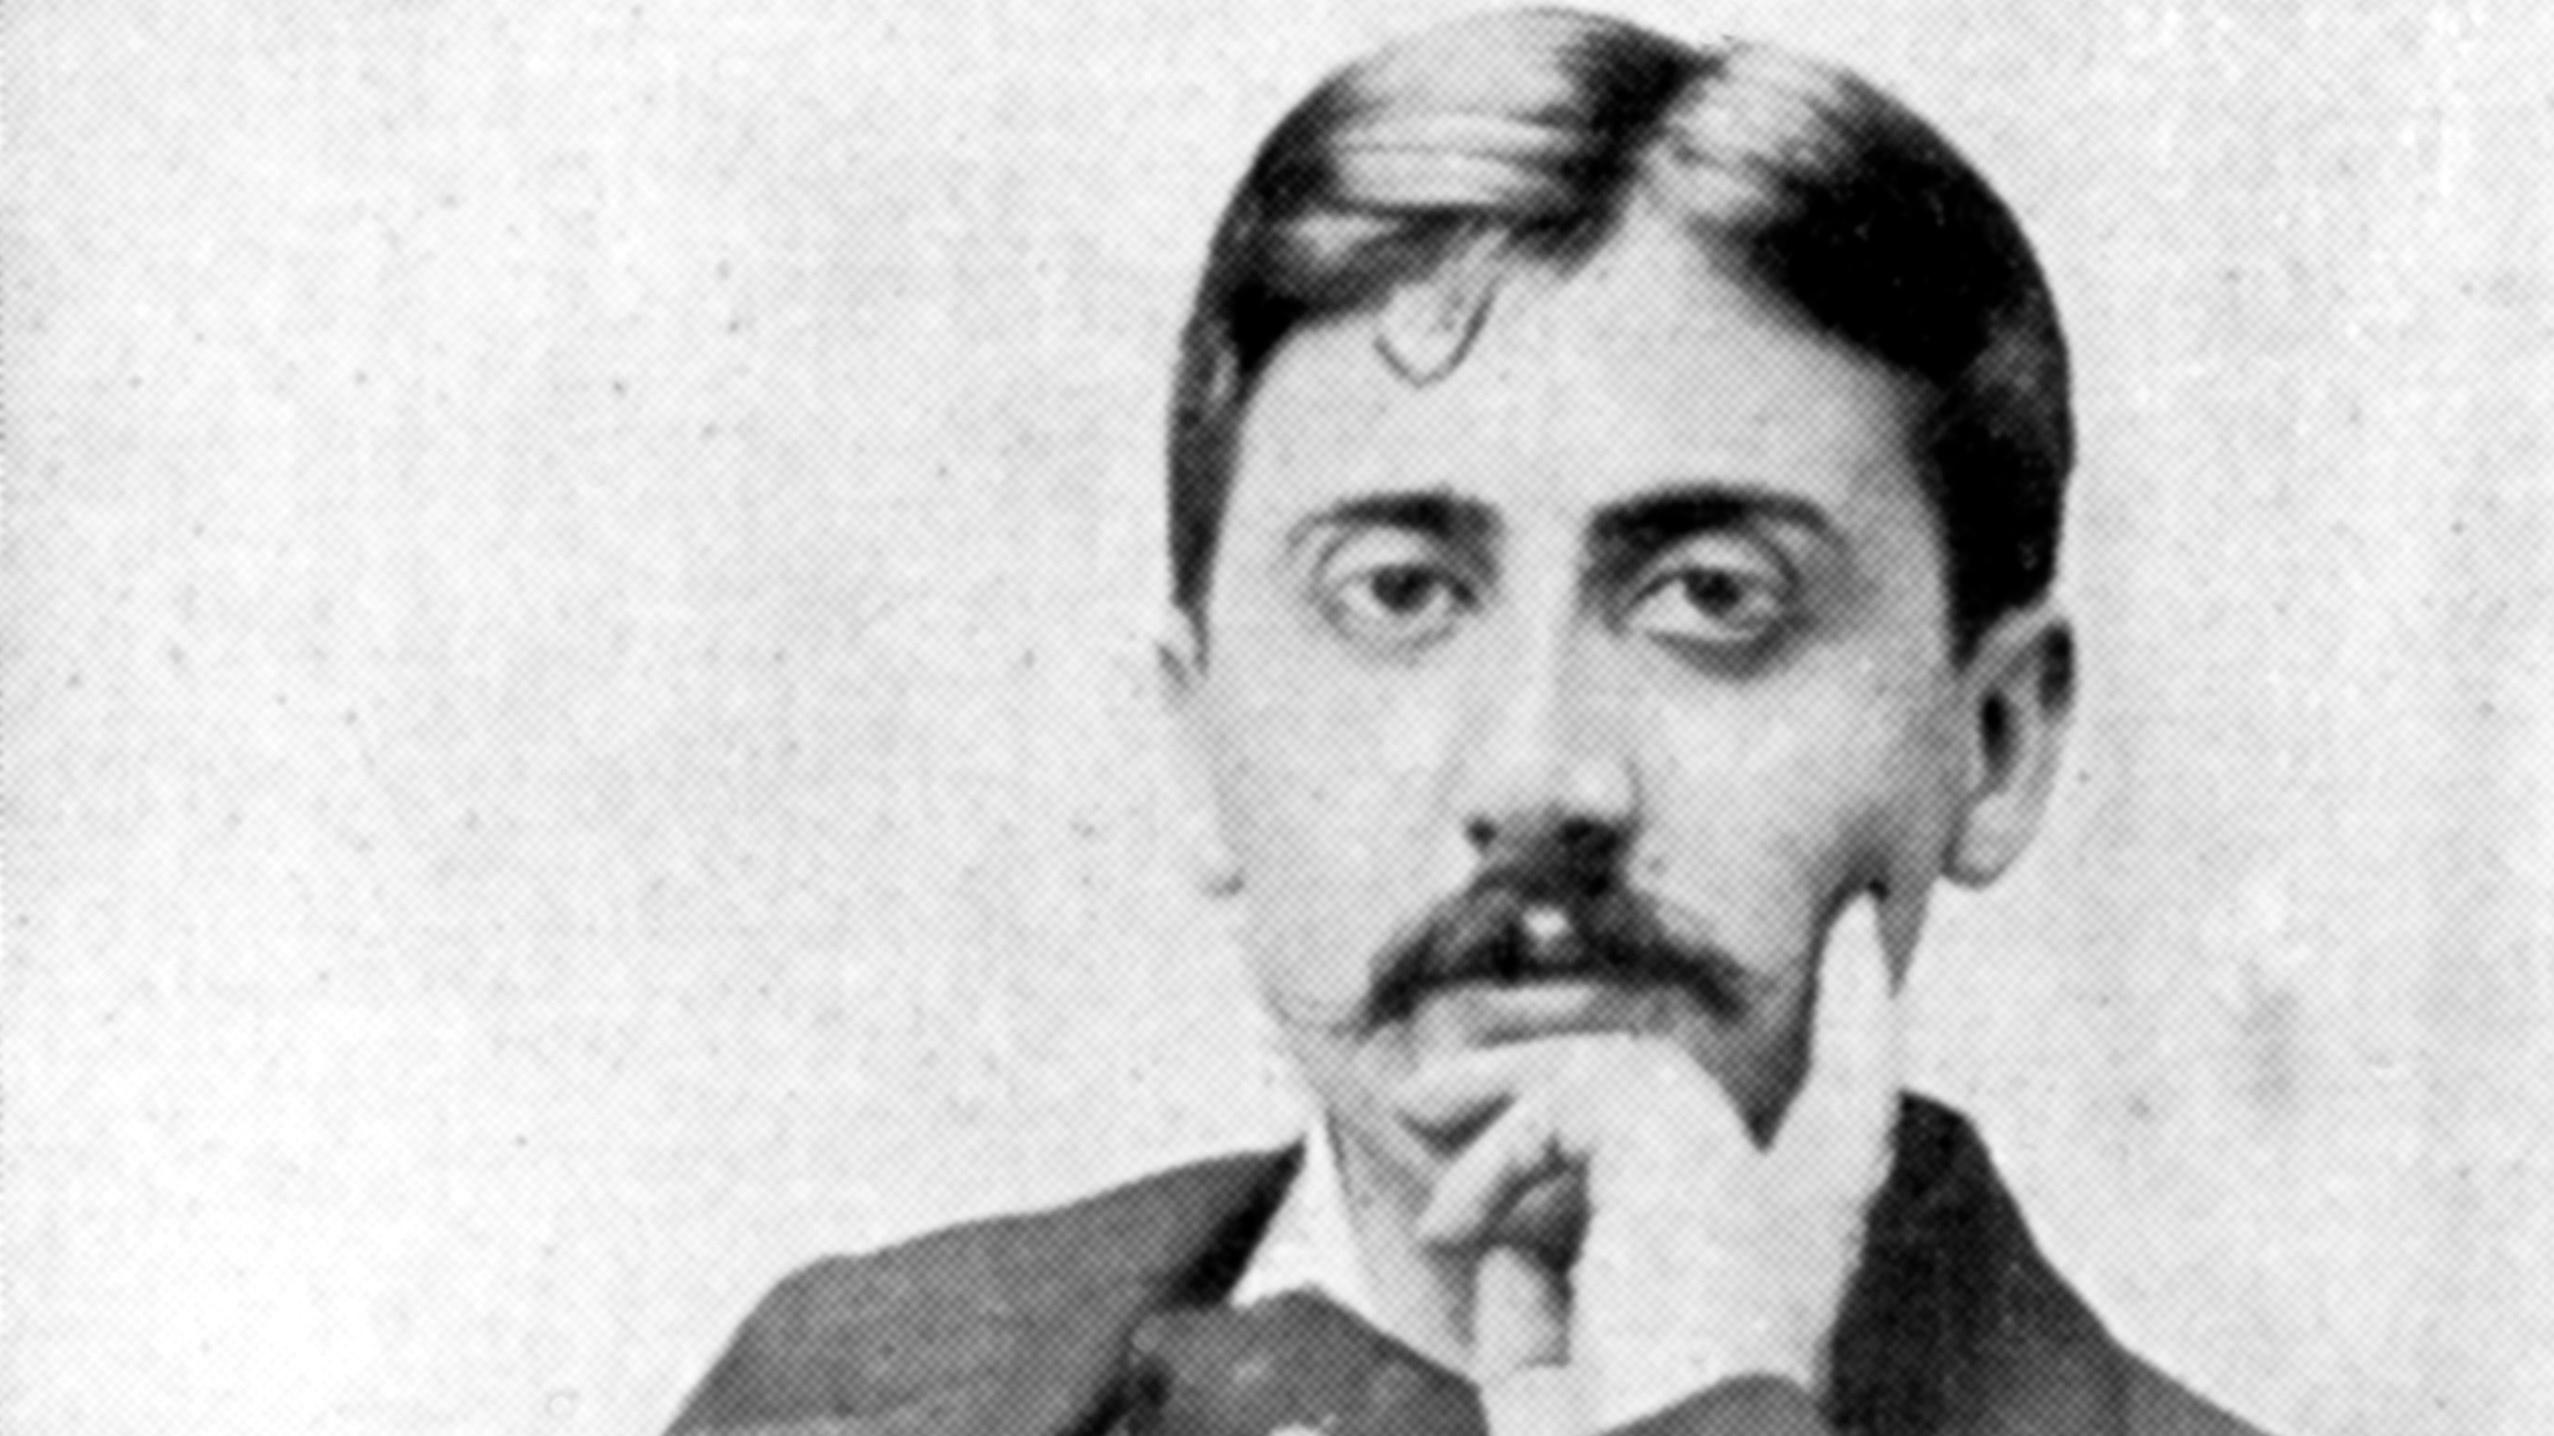 Canadian professor discovers what could be only footage of Marcel Proust